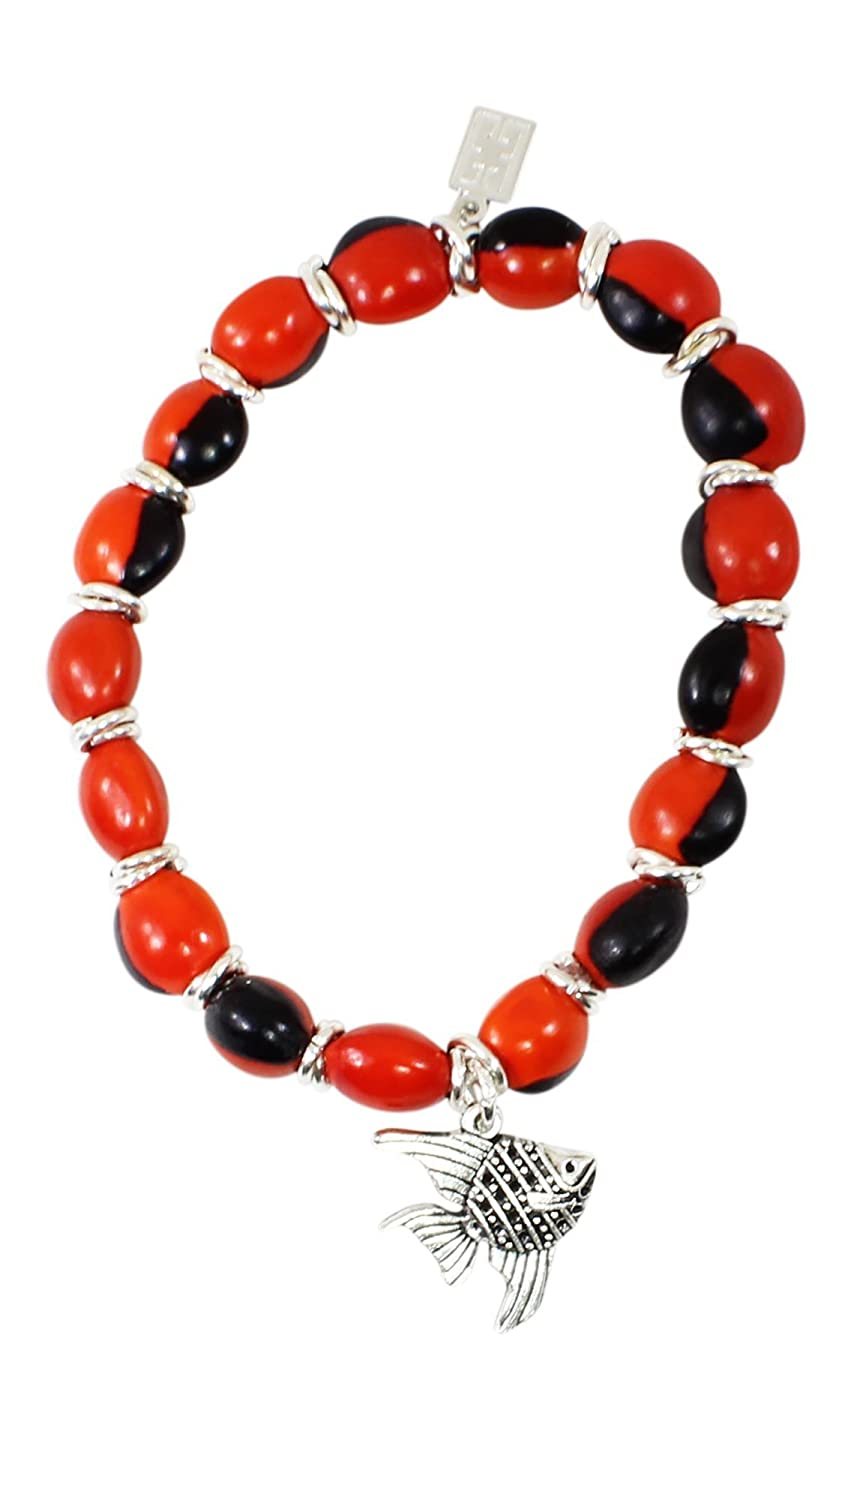 Eco-friendly Peruvian Gift Bracelet for Women - Huayruro Red Black Seeds - Fish Charm - Handmade Jewelry By Evelyn Brooks